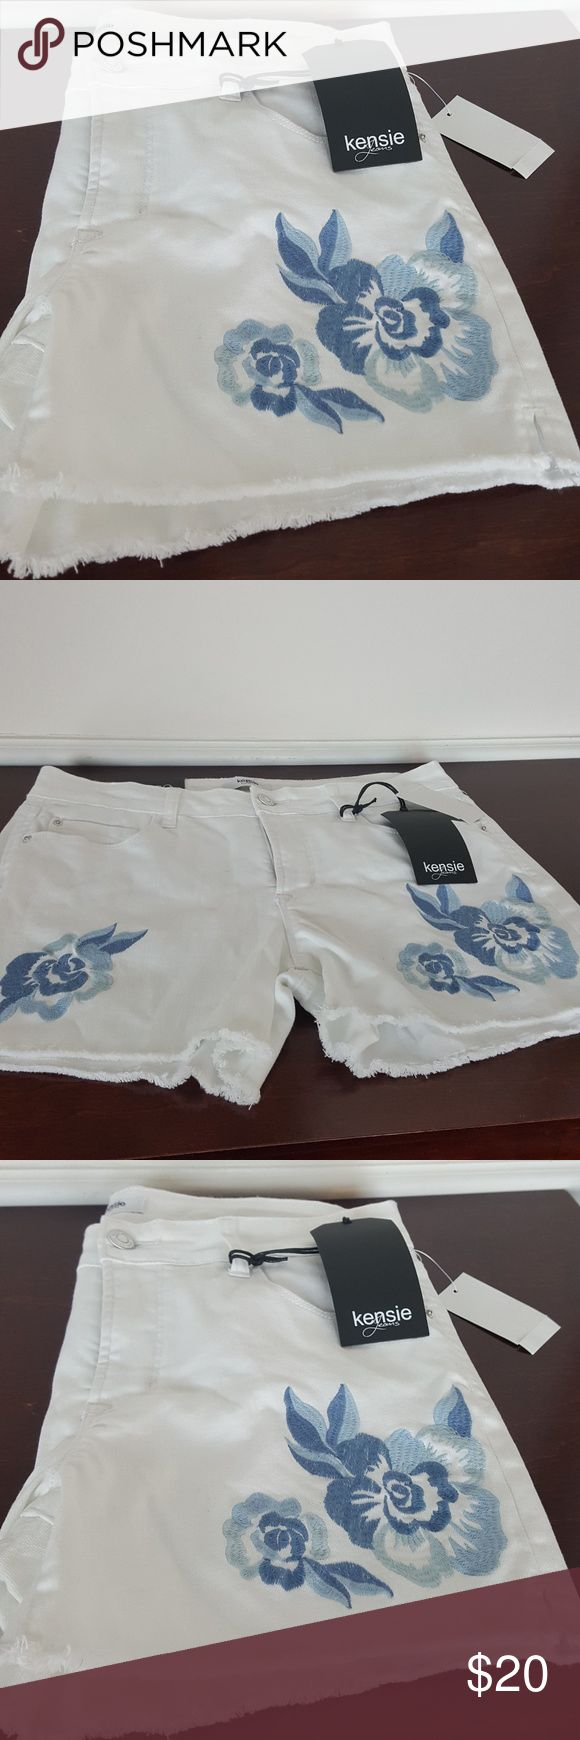 "Kensie Jeans Flower Embroidered Cut Off Shorts NWT White Denim Frayed Cut Off Shorts. Embroidered blue flowers. Button and Zip Fly. 5 Pocket Style. Size 8/29 Waist 29"" Inseam 4"" Rise 9"" Kensie Jeans Shorts Jean Shorts"